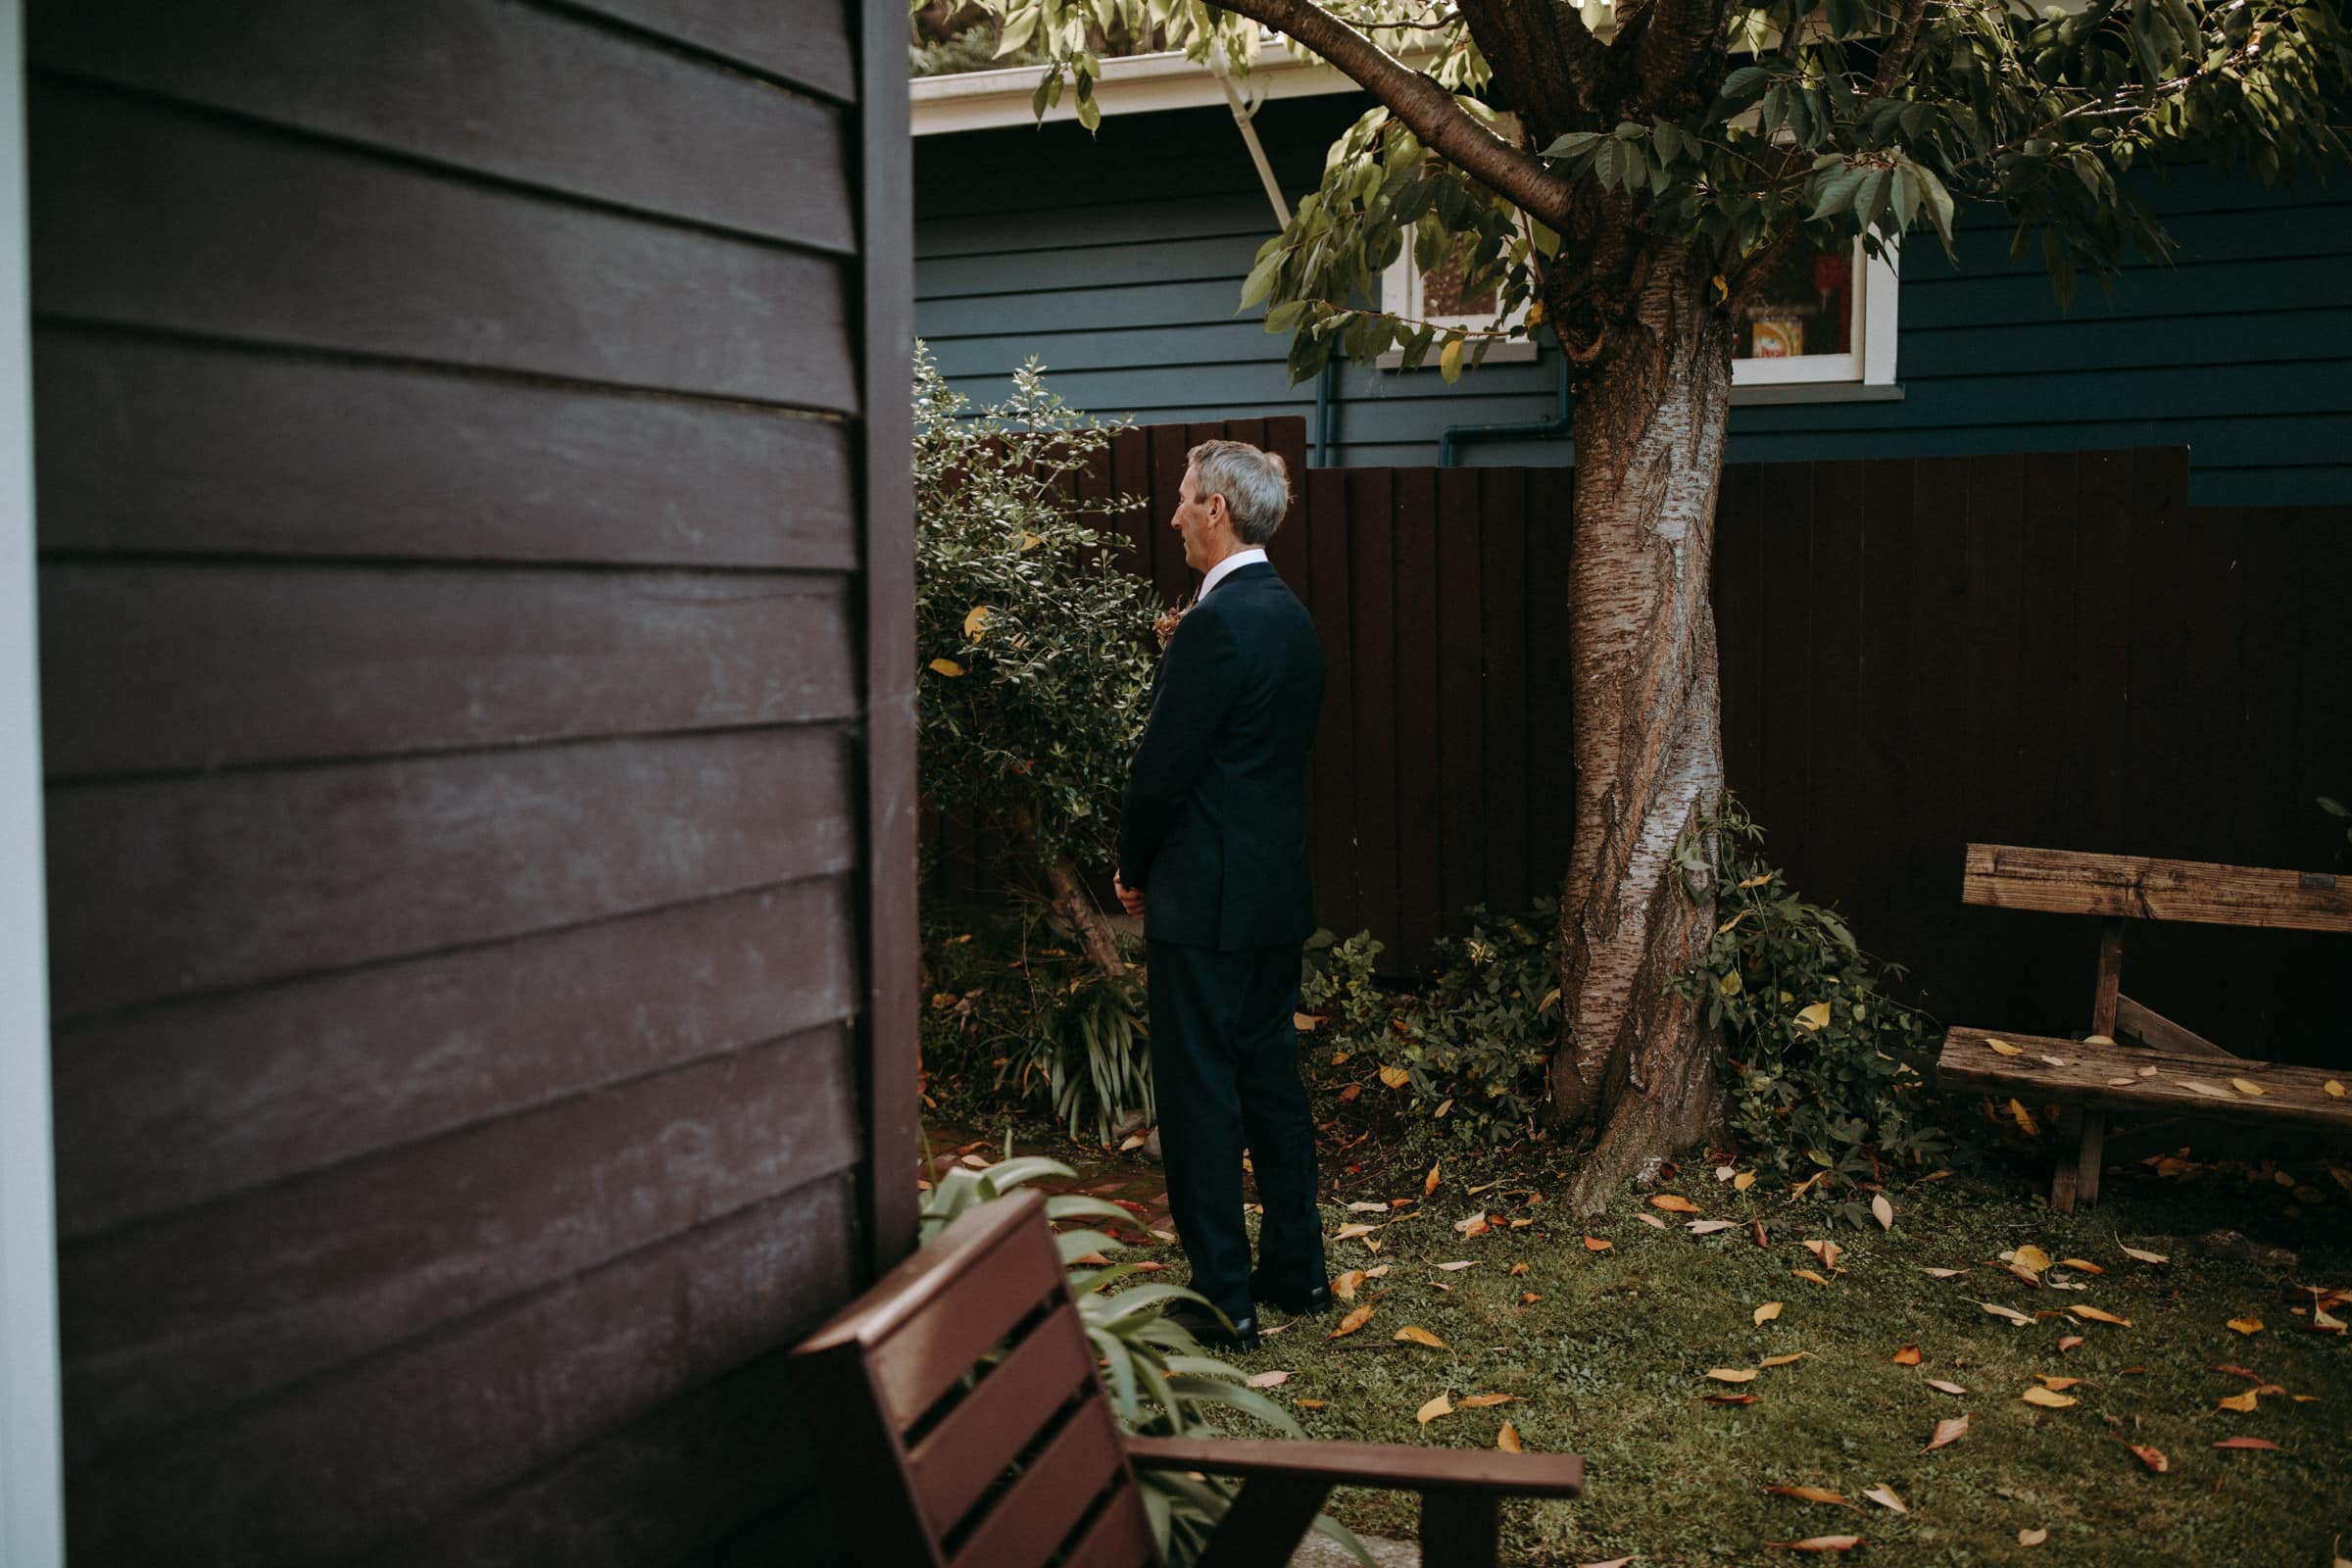 The brides father is waiting for his daughter in the garden.